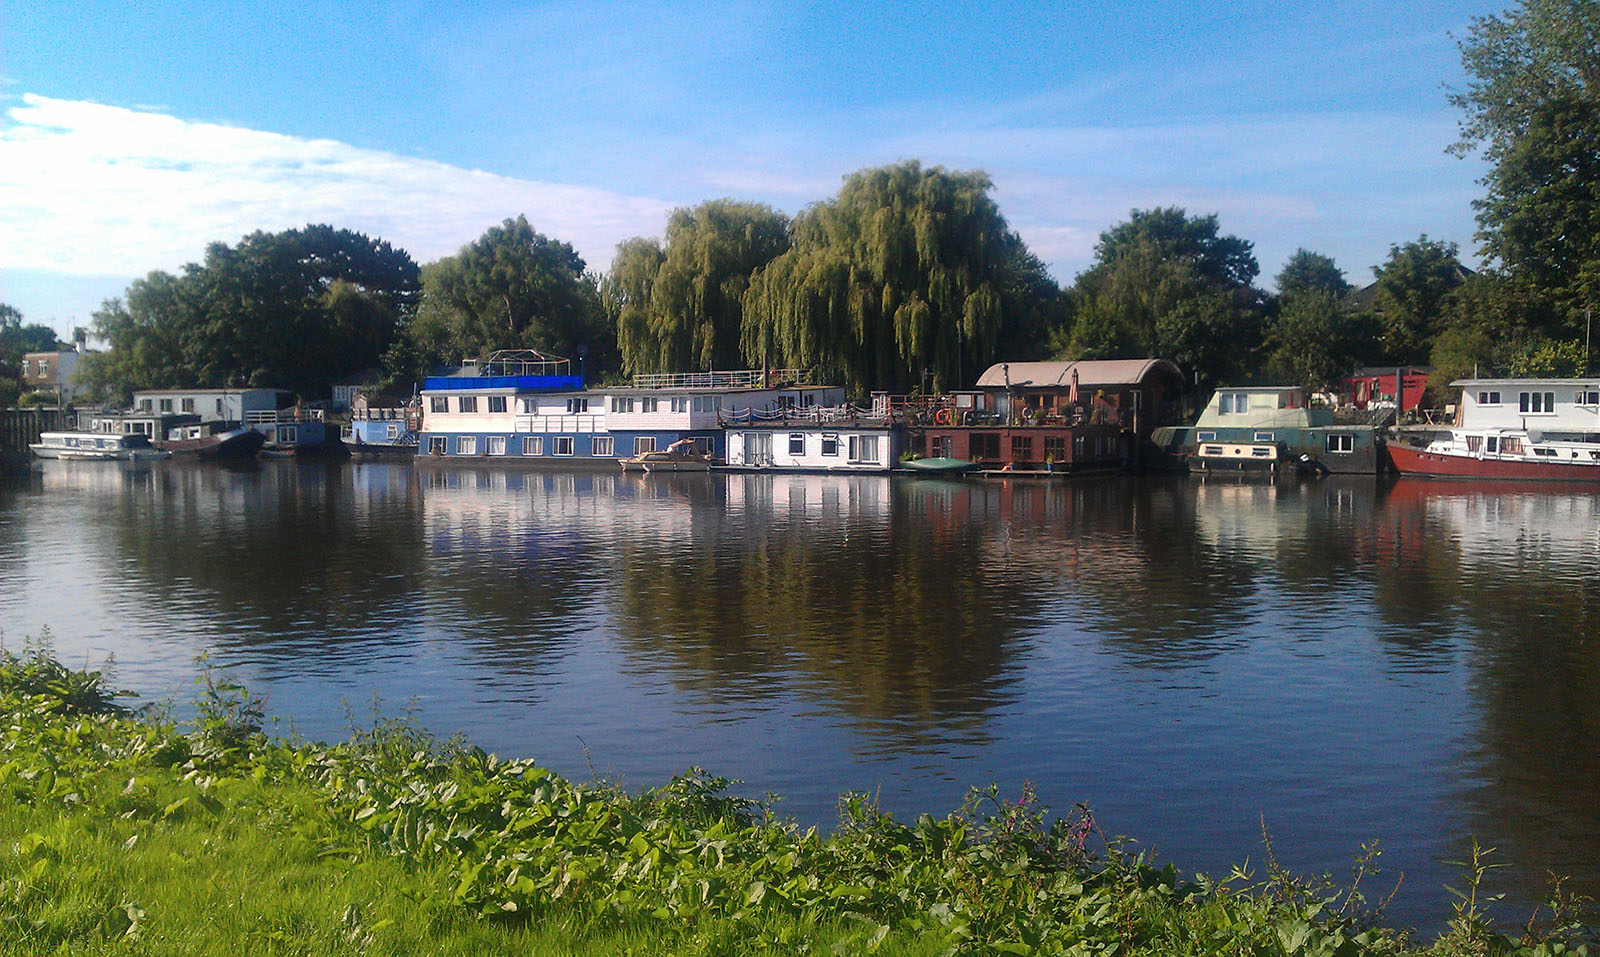 Houseboats on Thames river in Richmond - Surrey - UK.